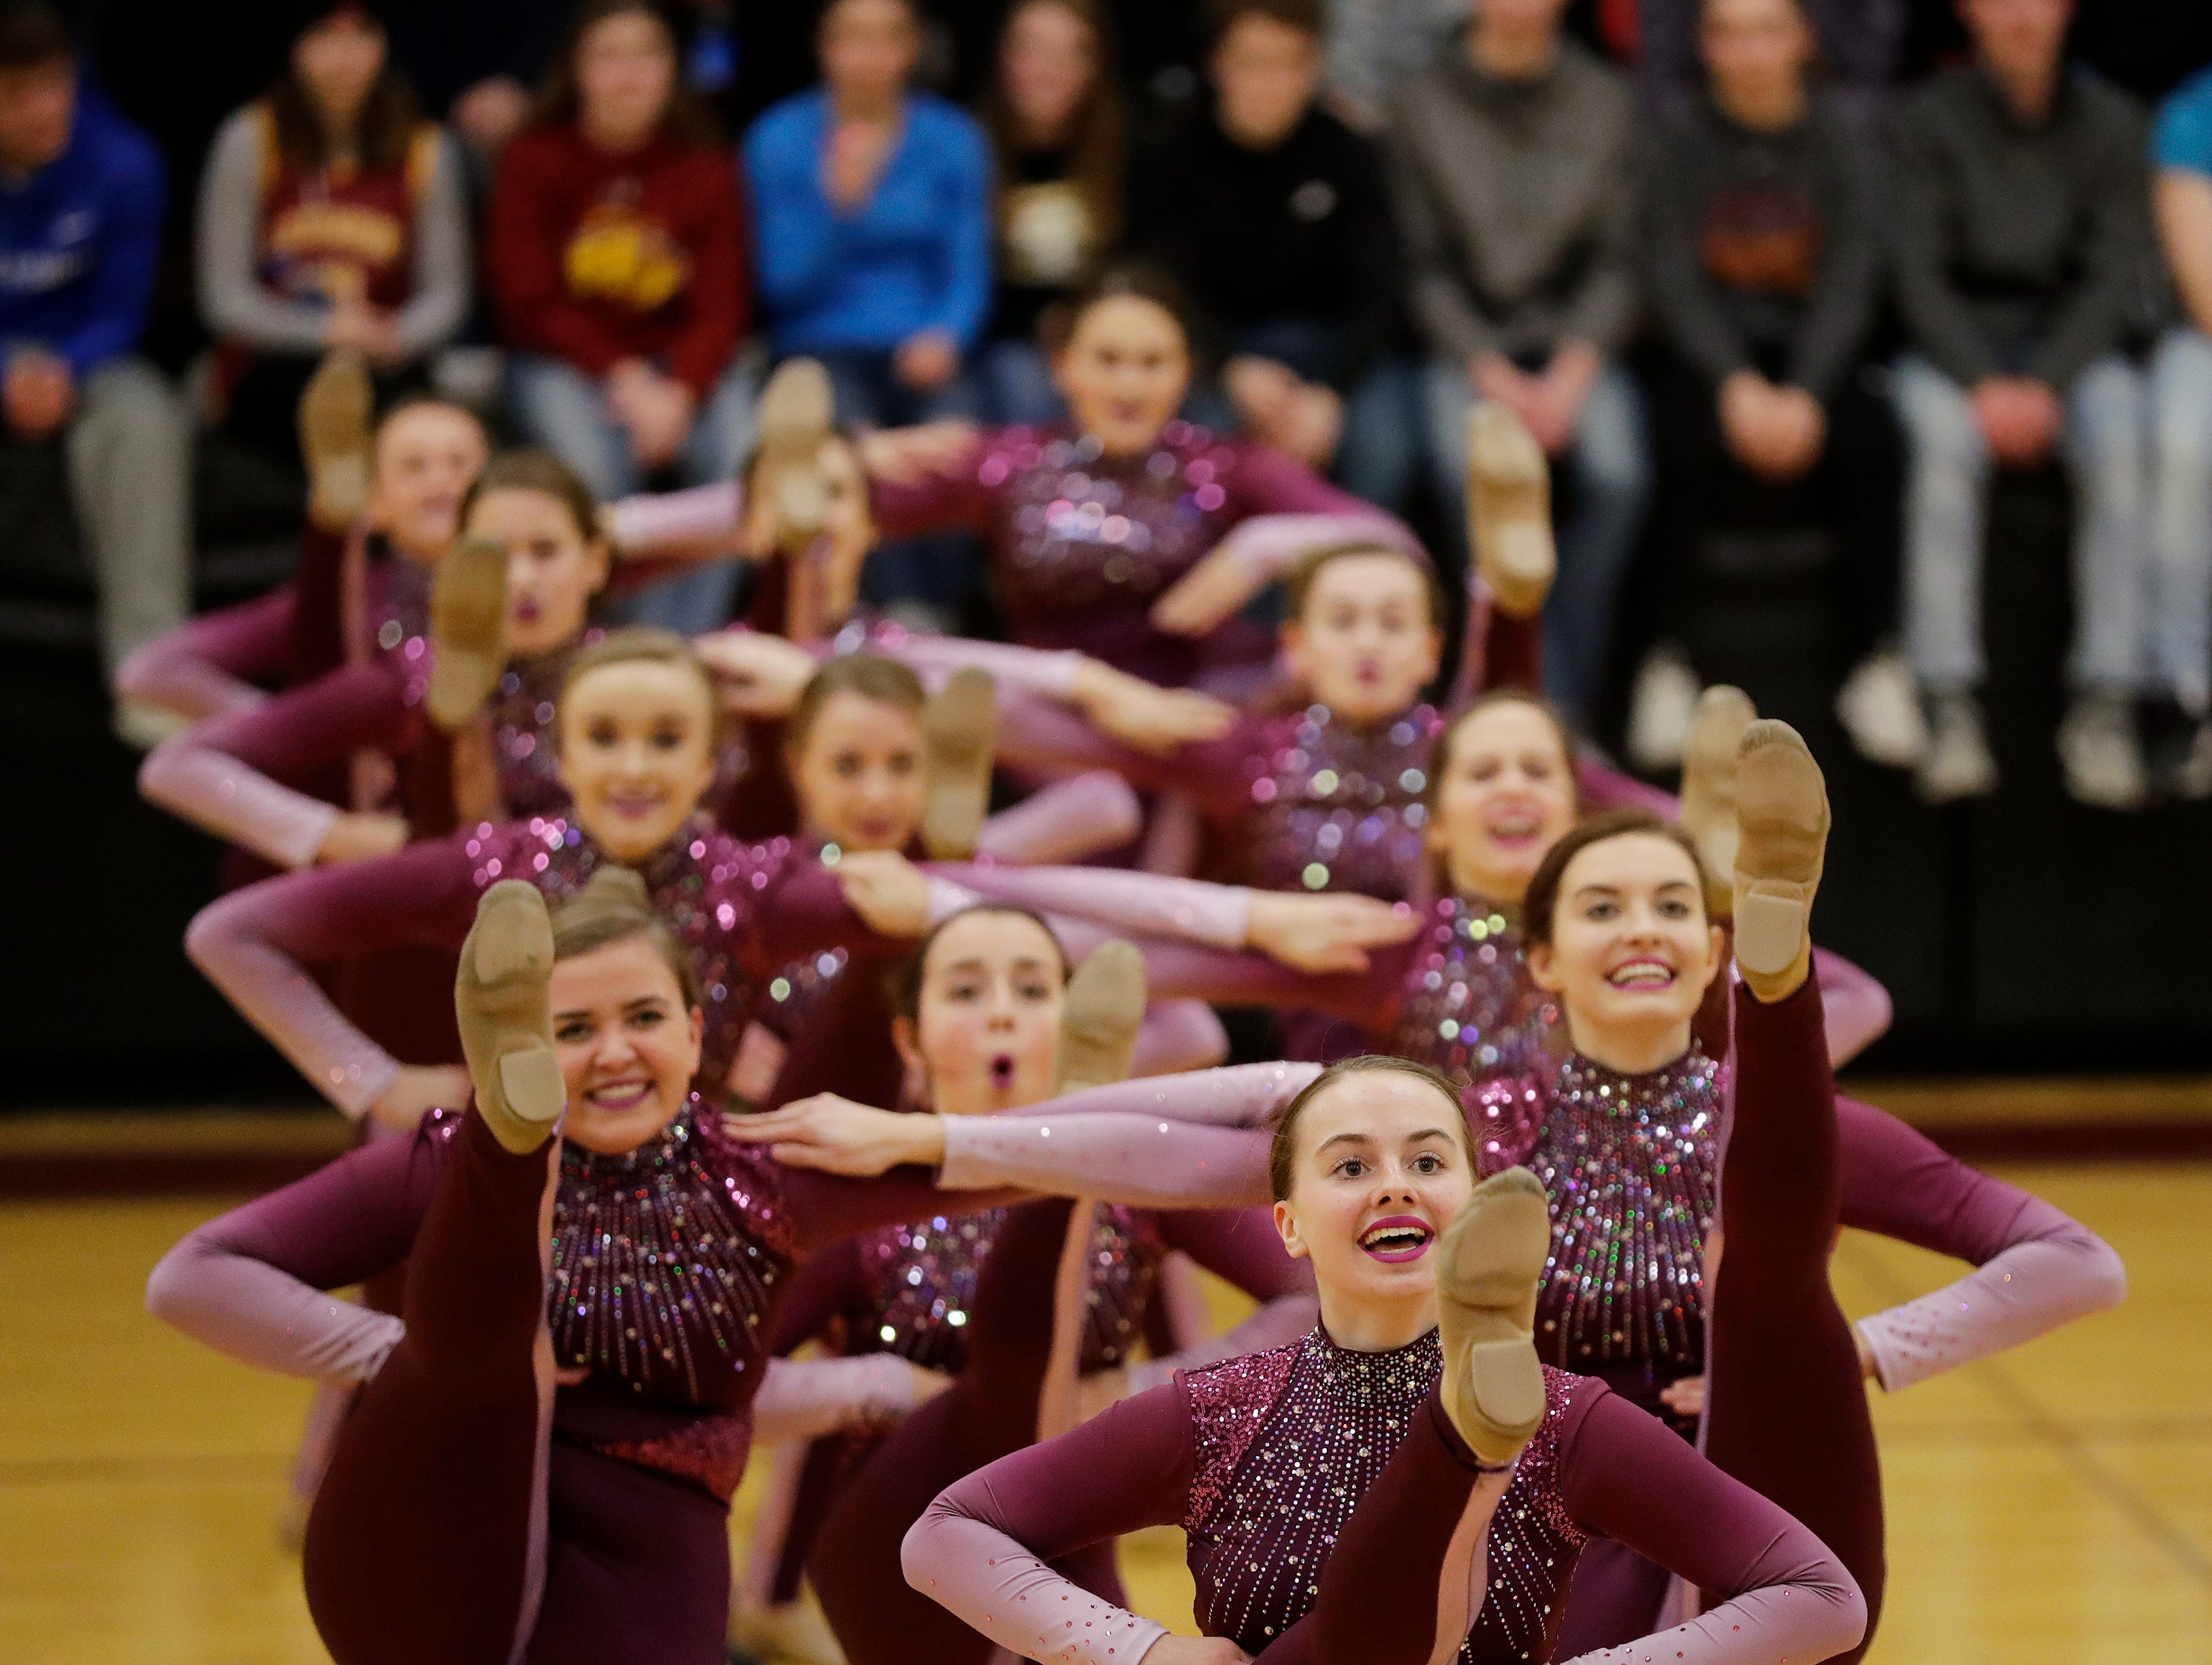 Luxemburg-Casco's dance team performs during half time during a girls basketball game against Waupaca at Luxemburg-Casco high school on Thursday, January 10, 2019 in Luxemburg, Wis.